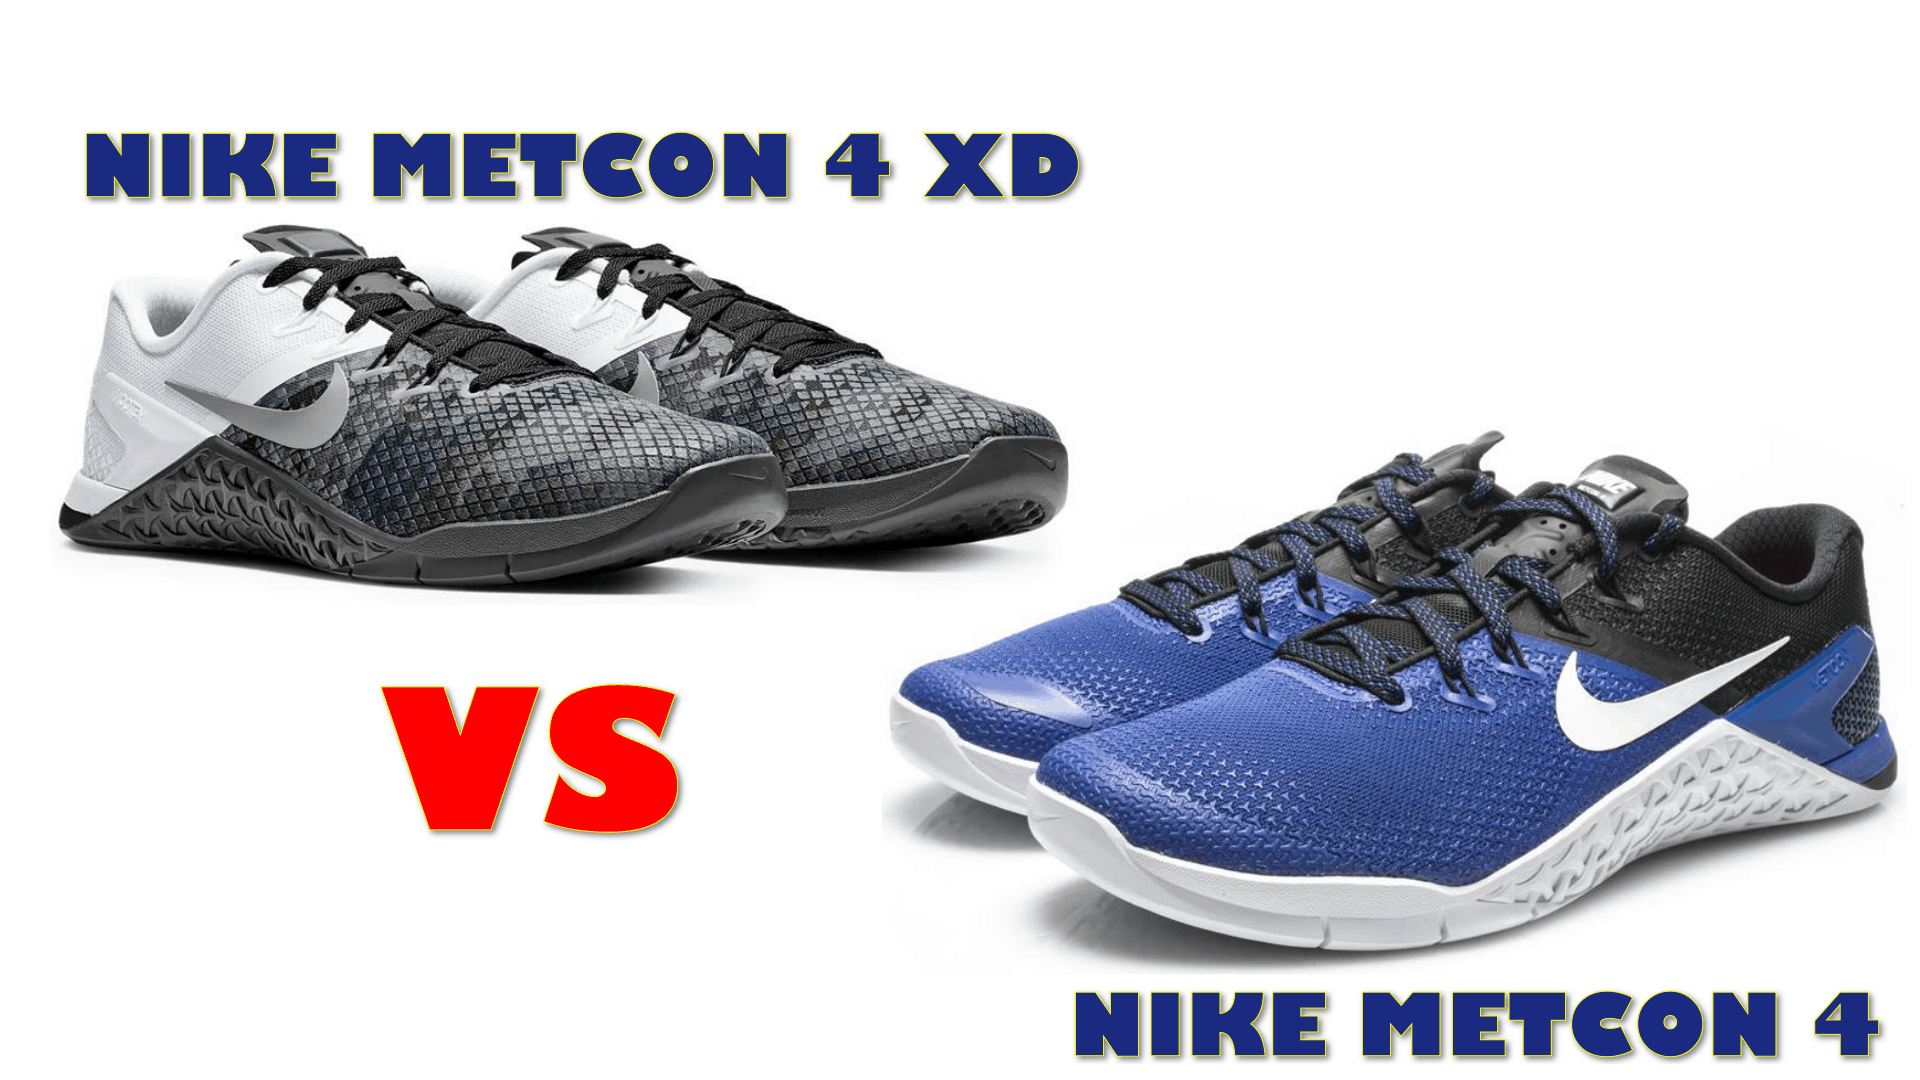 6c0855a1dba5 Nike Metcon 4 XD vs Nike Metcon 4 (NEW FOR 2019!)